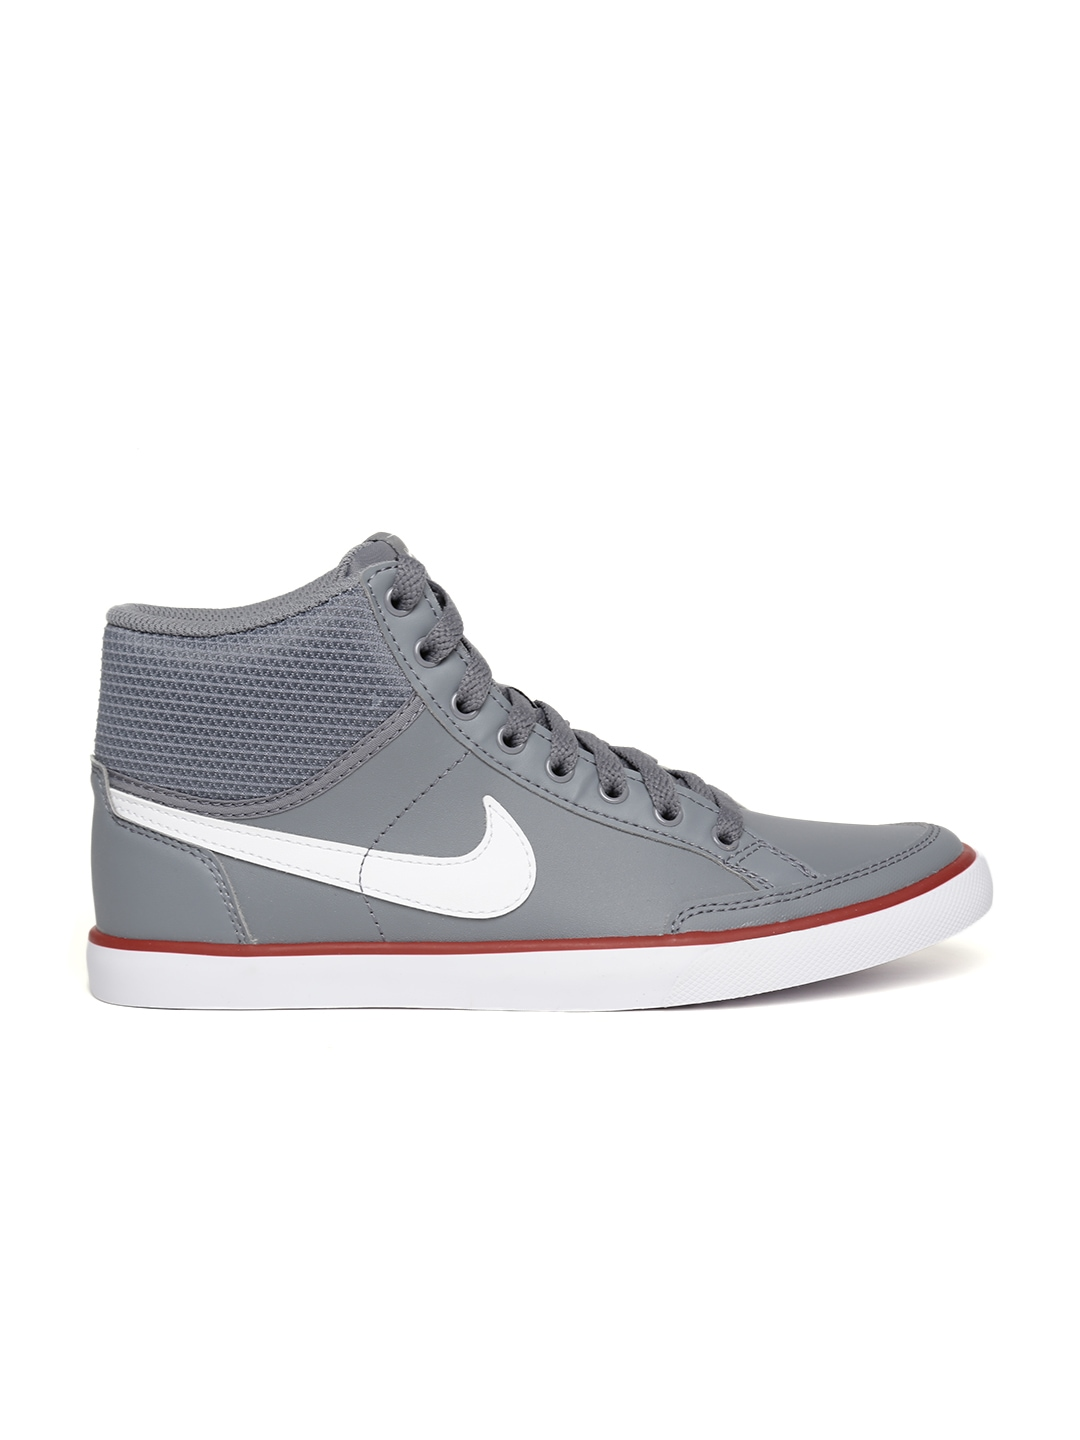 myntra nike grey iii mid leather casual shoes